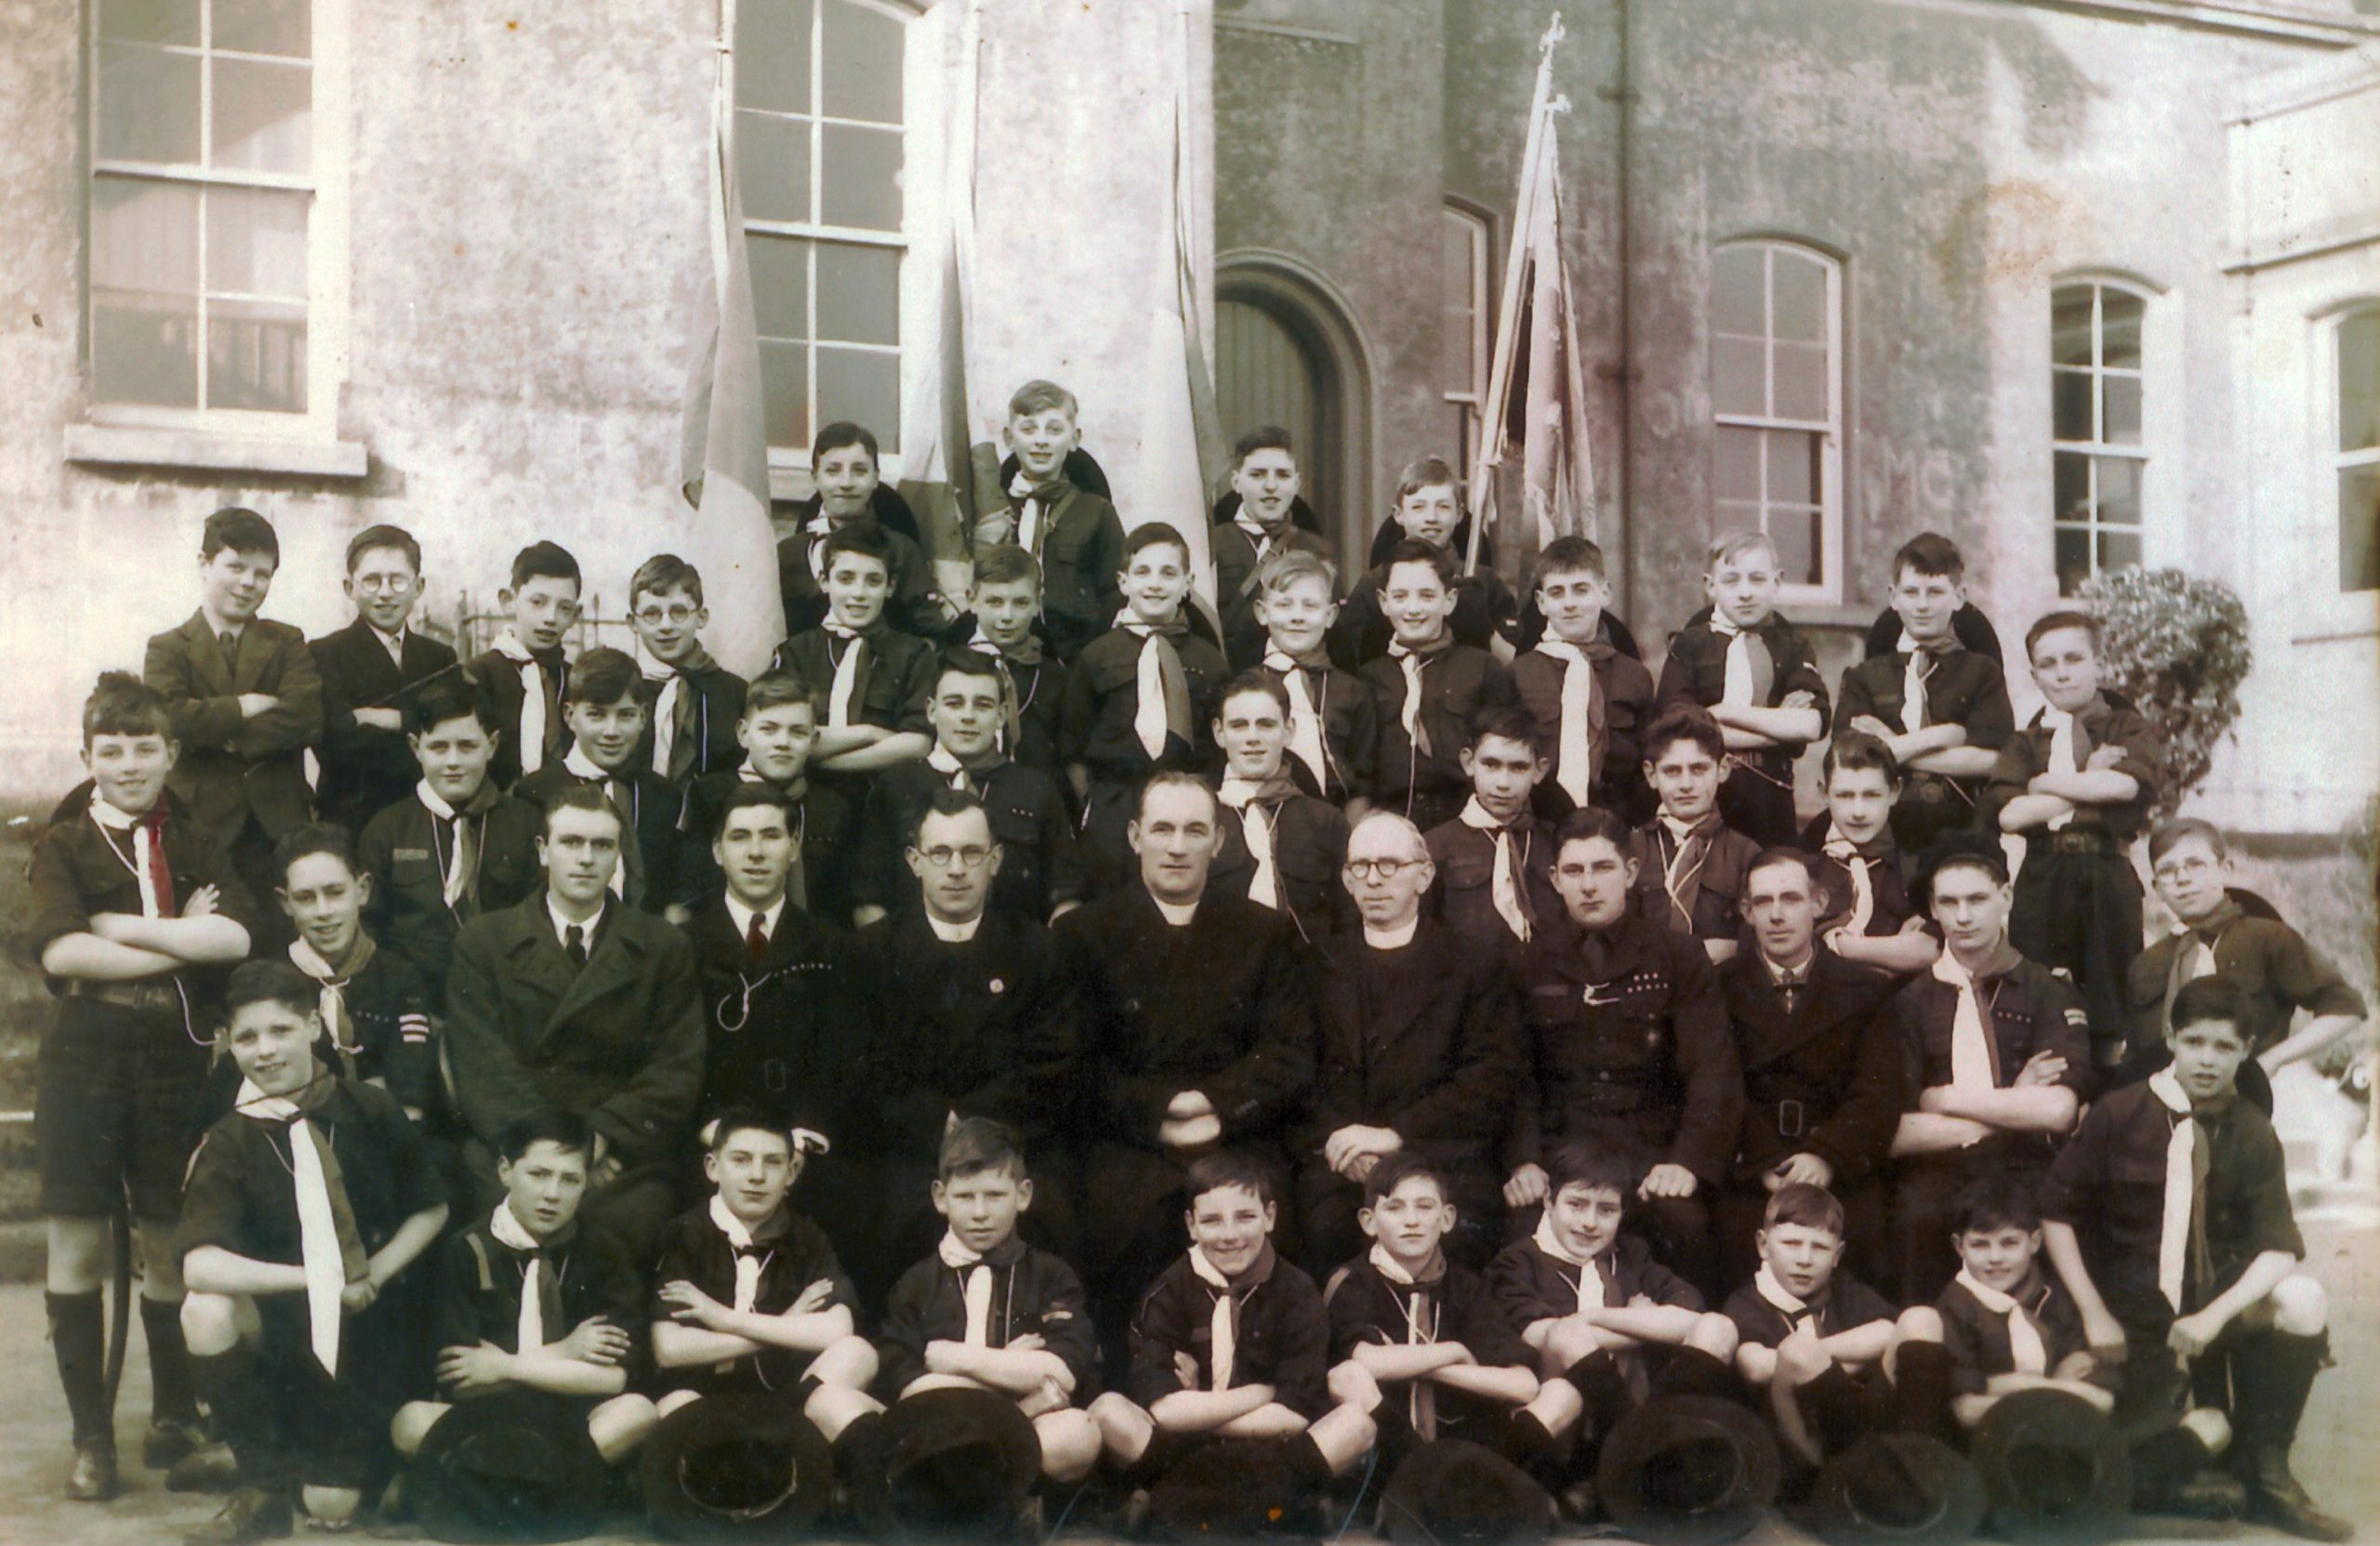 The 3rd and the 7th De La Salle Scout Troops in 1938